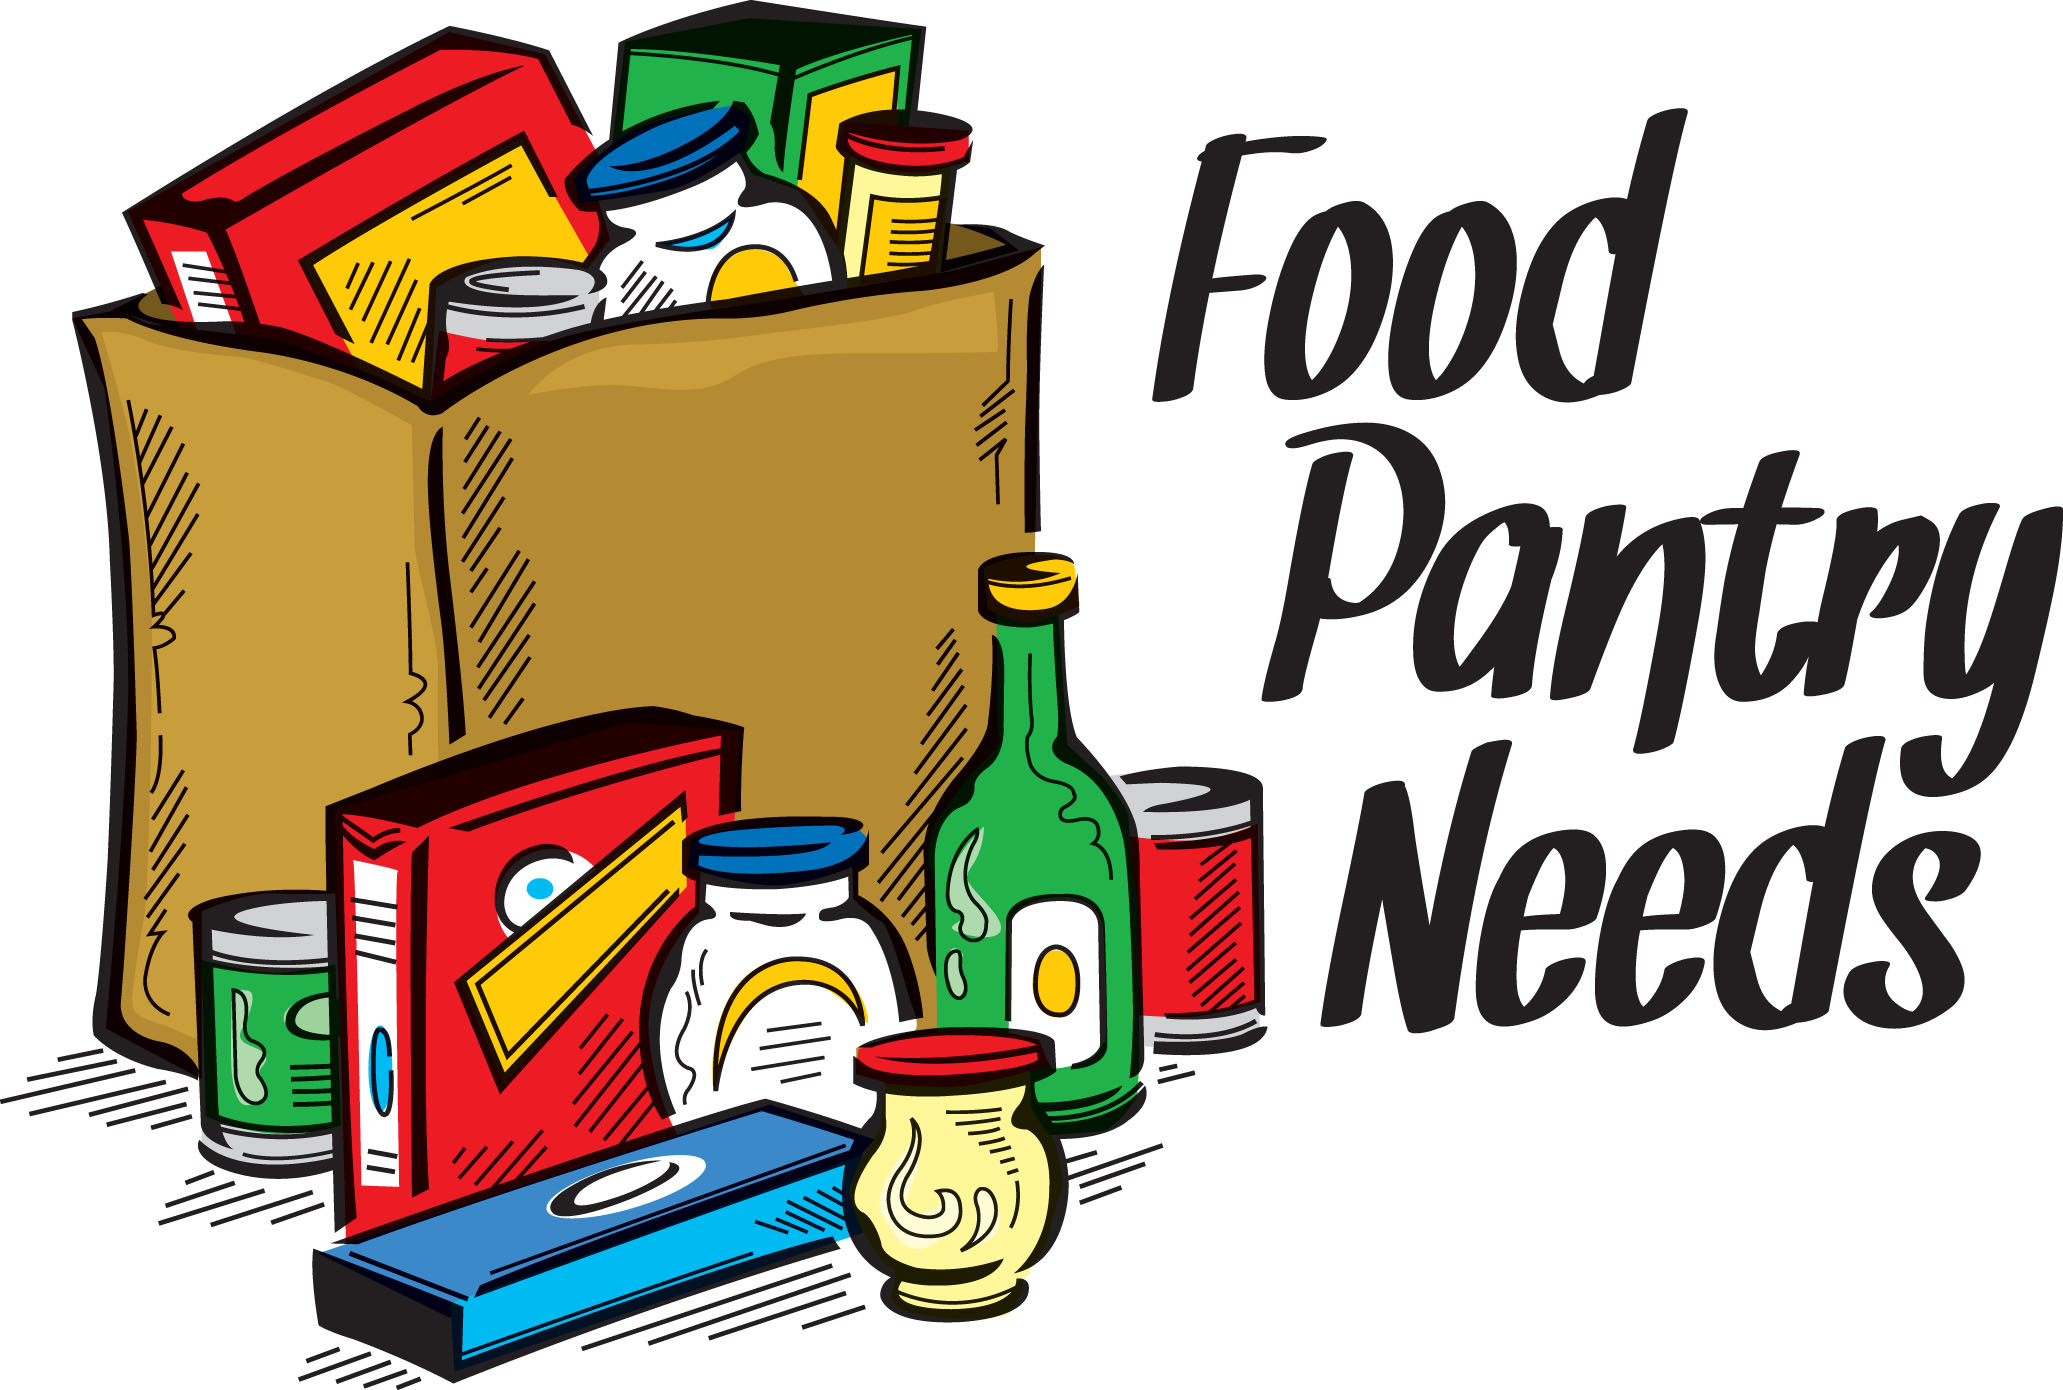 Clipart food bank image freeuse library Food Bank Clipart - Clipart Kid image freeuse library